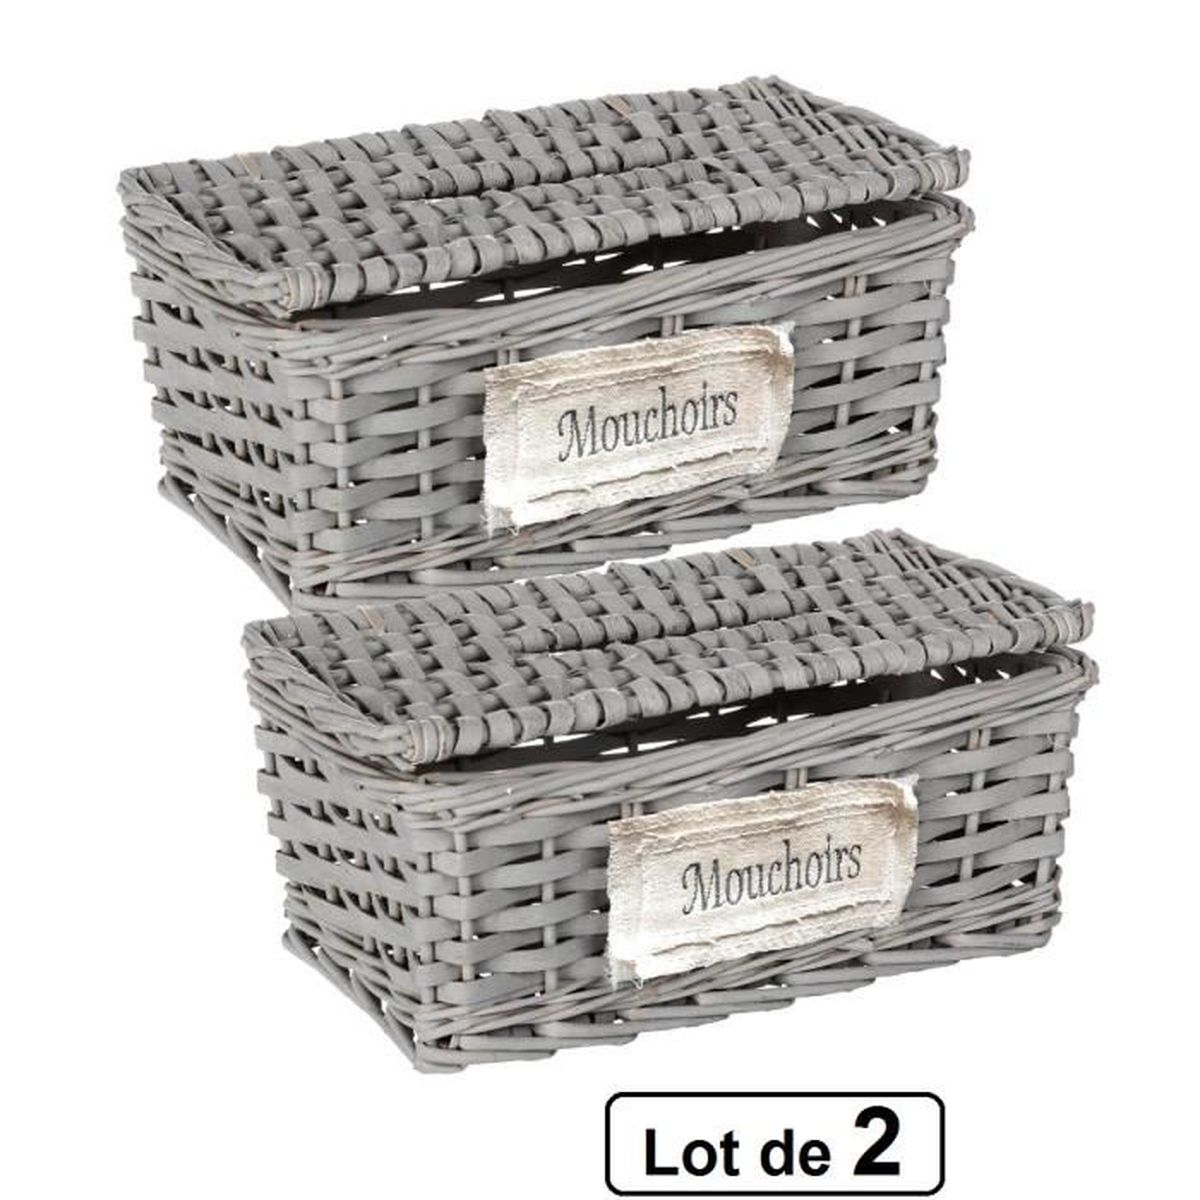 lot de 2 boites distributeurs mouchoirs en papier gris achat vente distributeur mouchoir. Black Bedroom Furniture Sets. Home Design Ideas